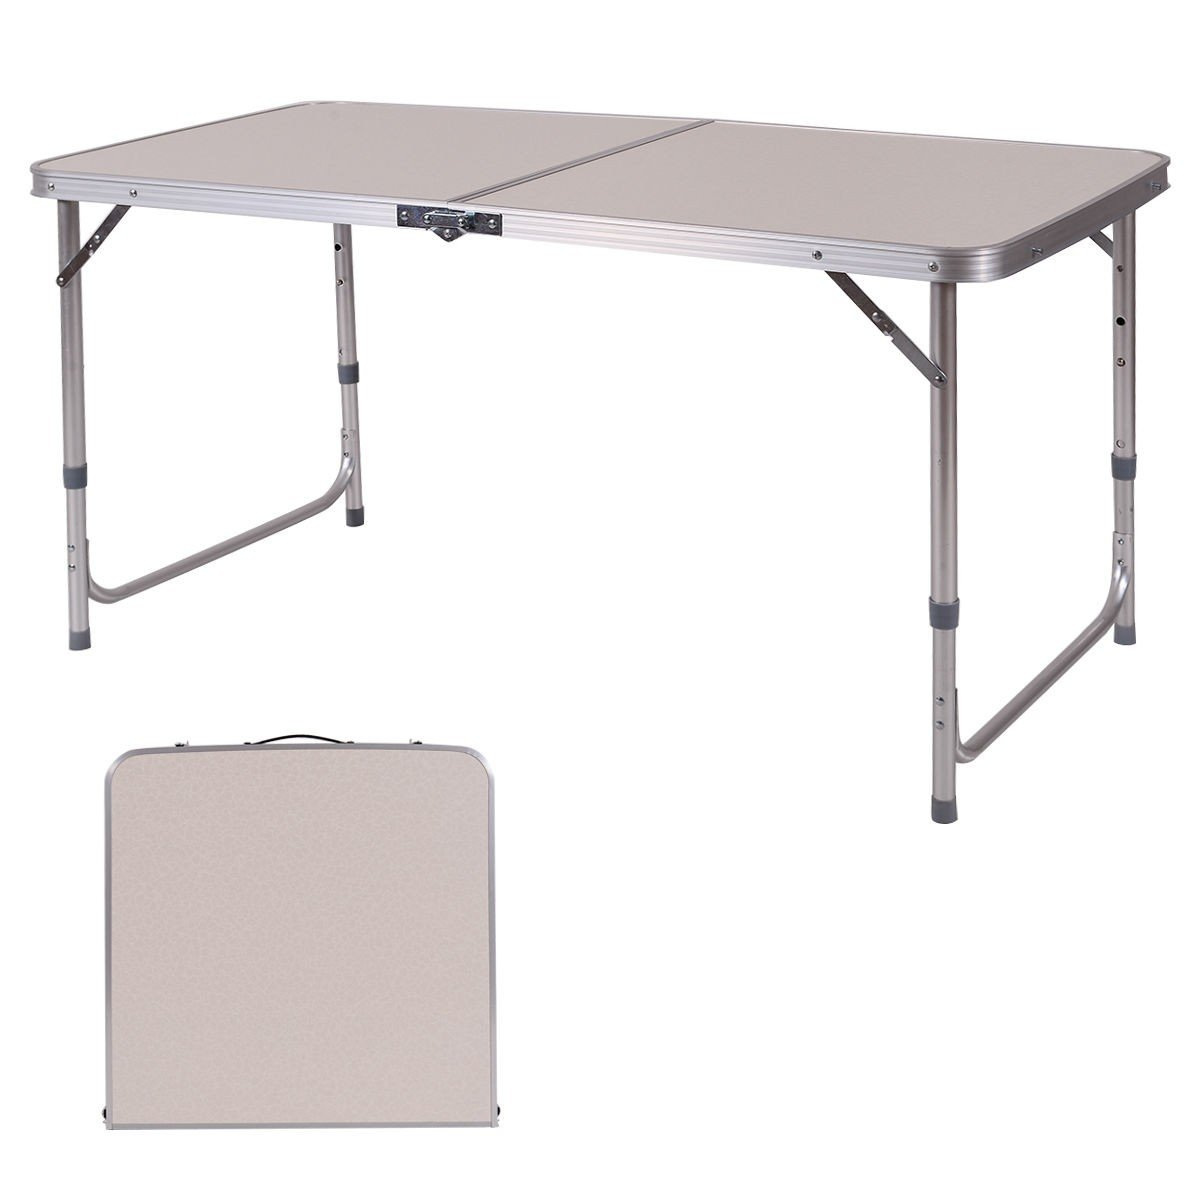 Custpromo 2' x 4' Height Adjustable Folding Camping Table Portable Aluminum Picnic Table with Carry Handle